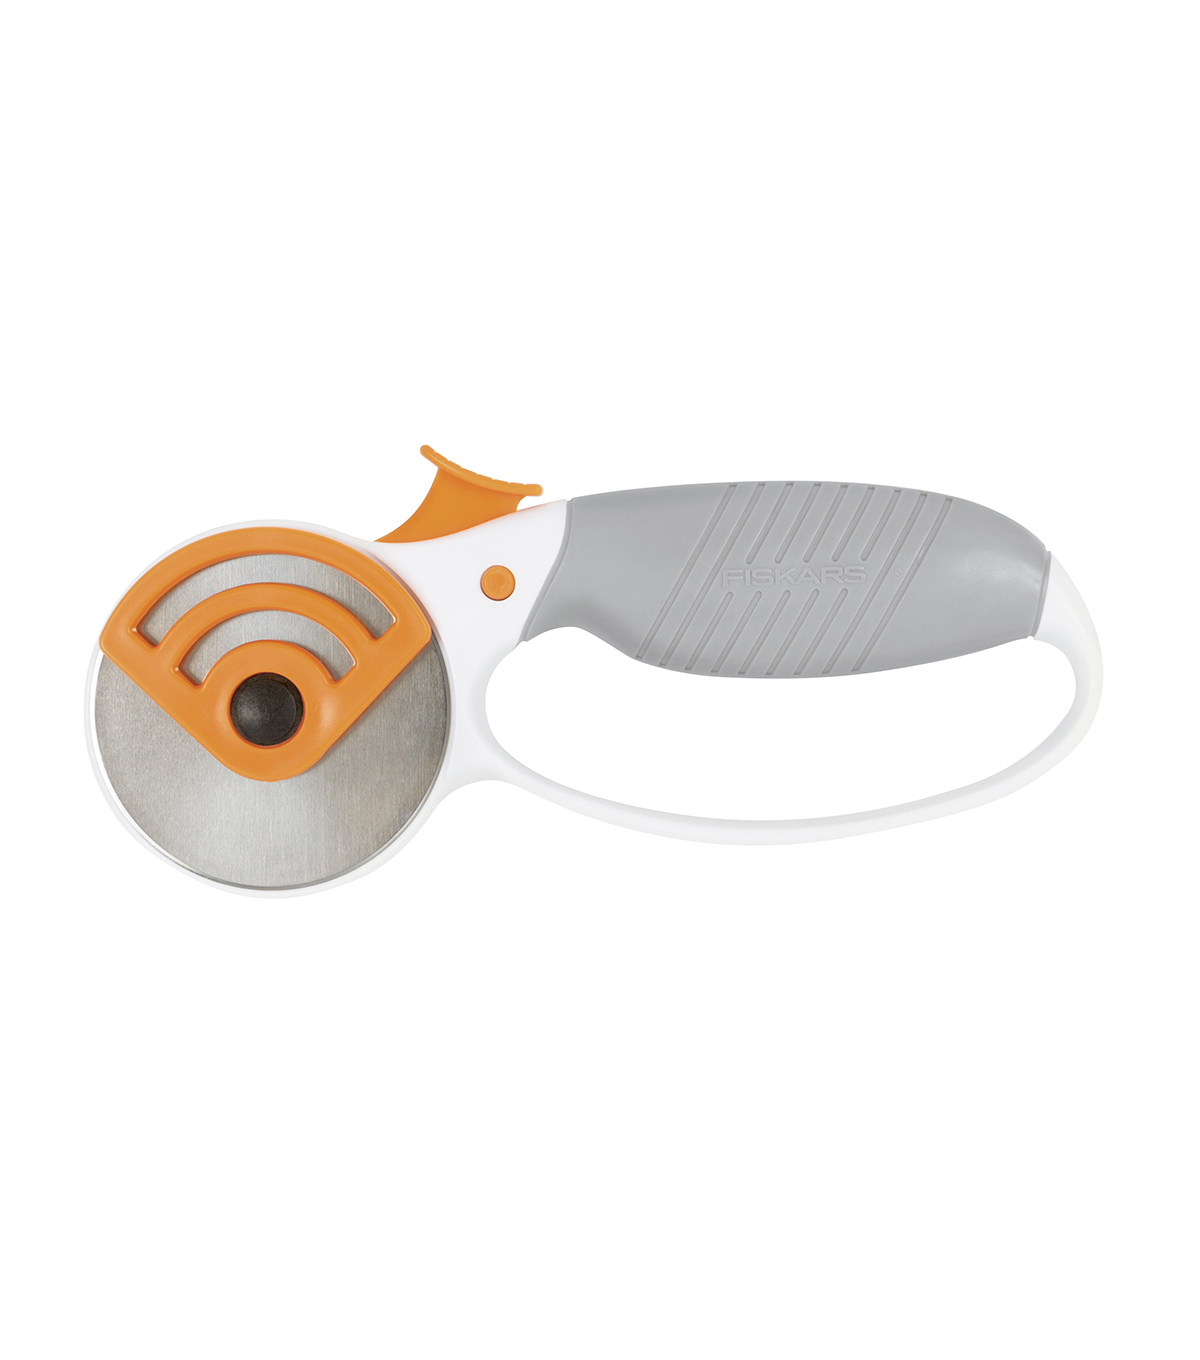 Fiskars DIY Heavy-duty Comfort Loop Rotary Cutter